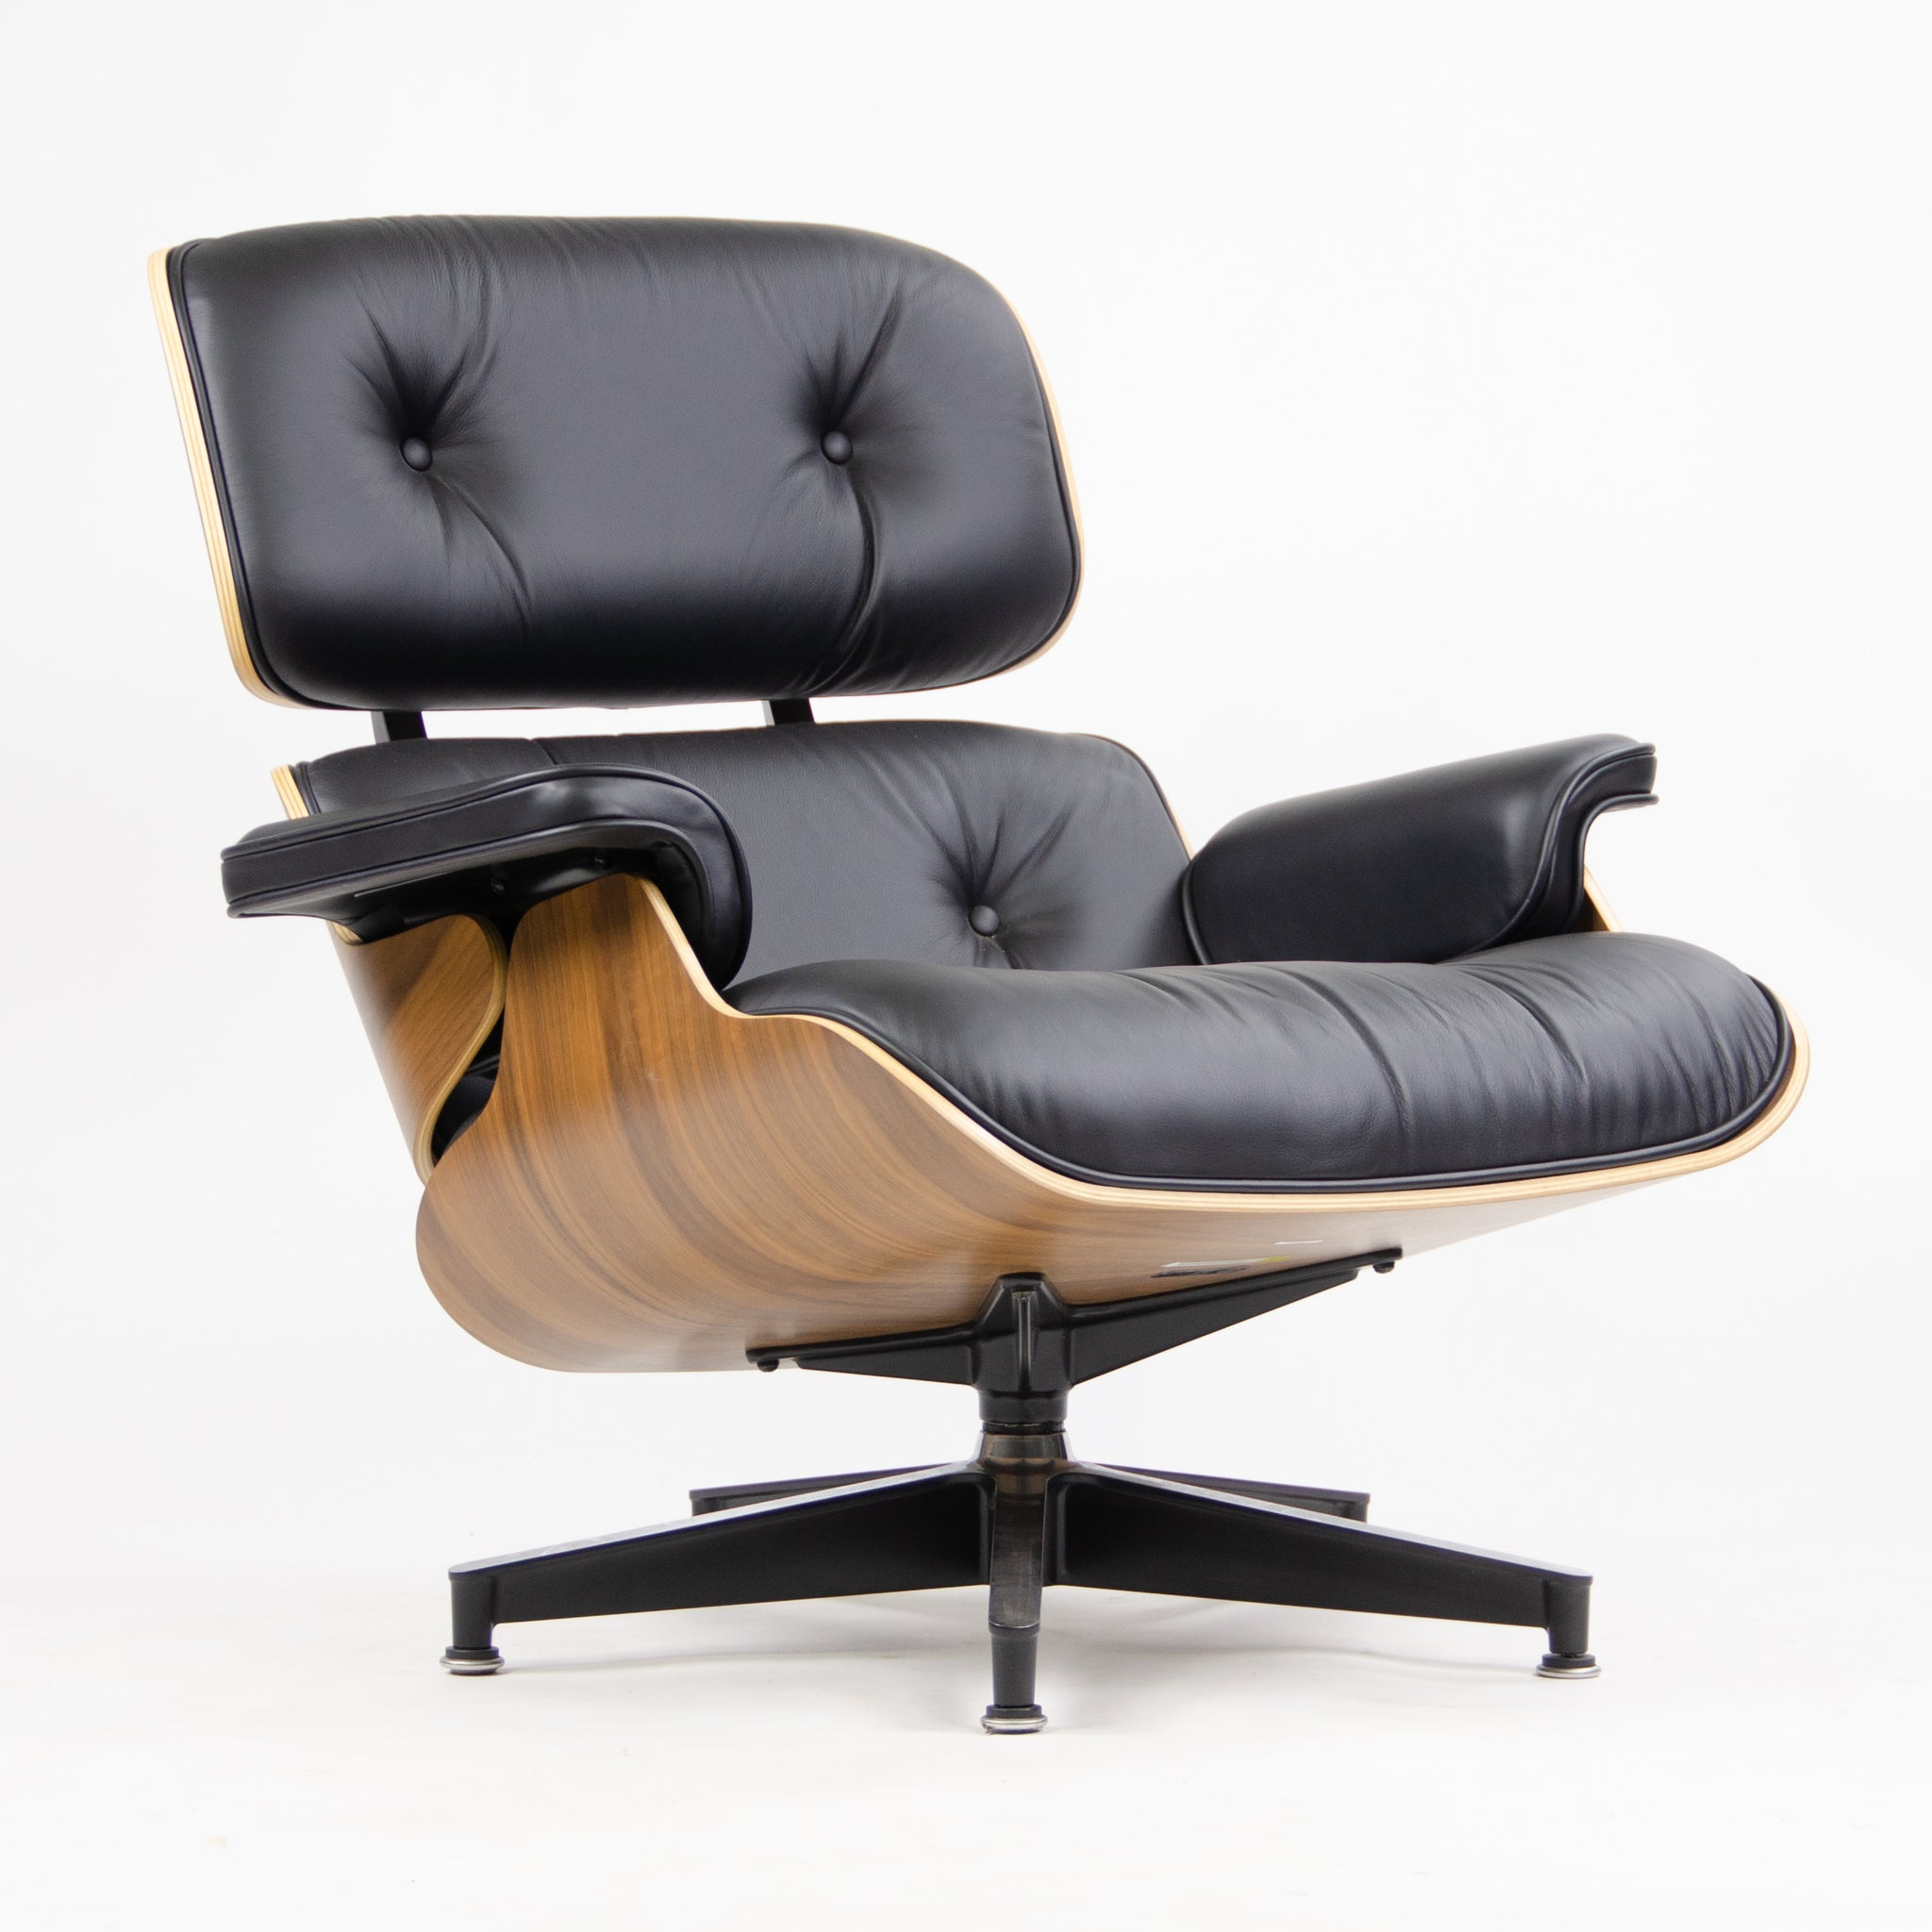 SOLD BRAND NEW 2018 Herman Miller Eames Lounge Chair & Ottoman Walnut 670 671 Black Leather